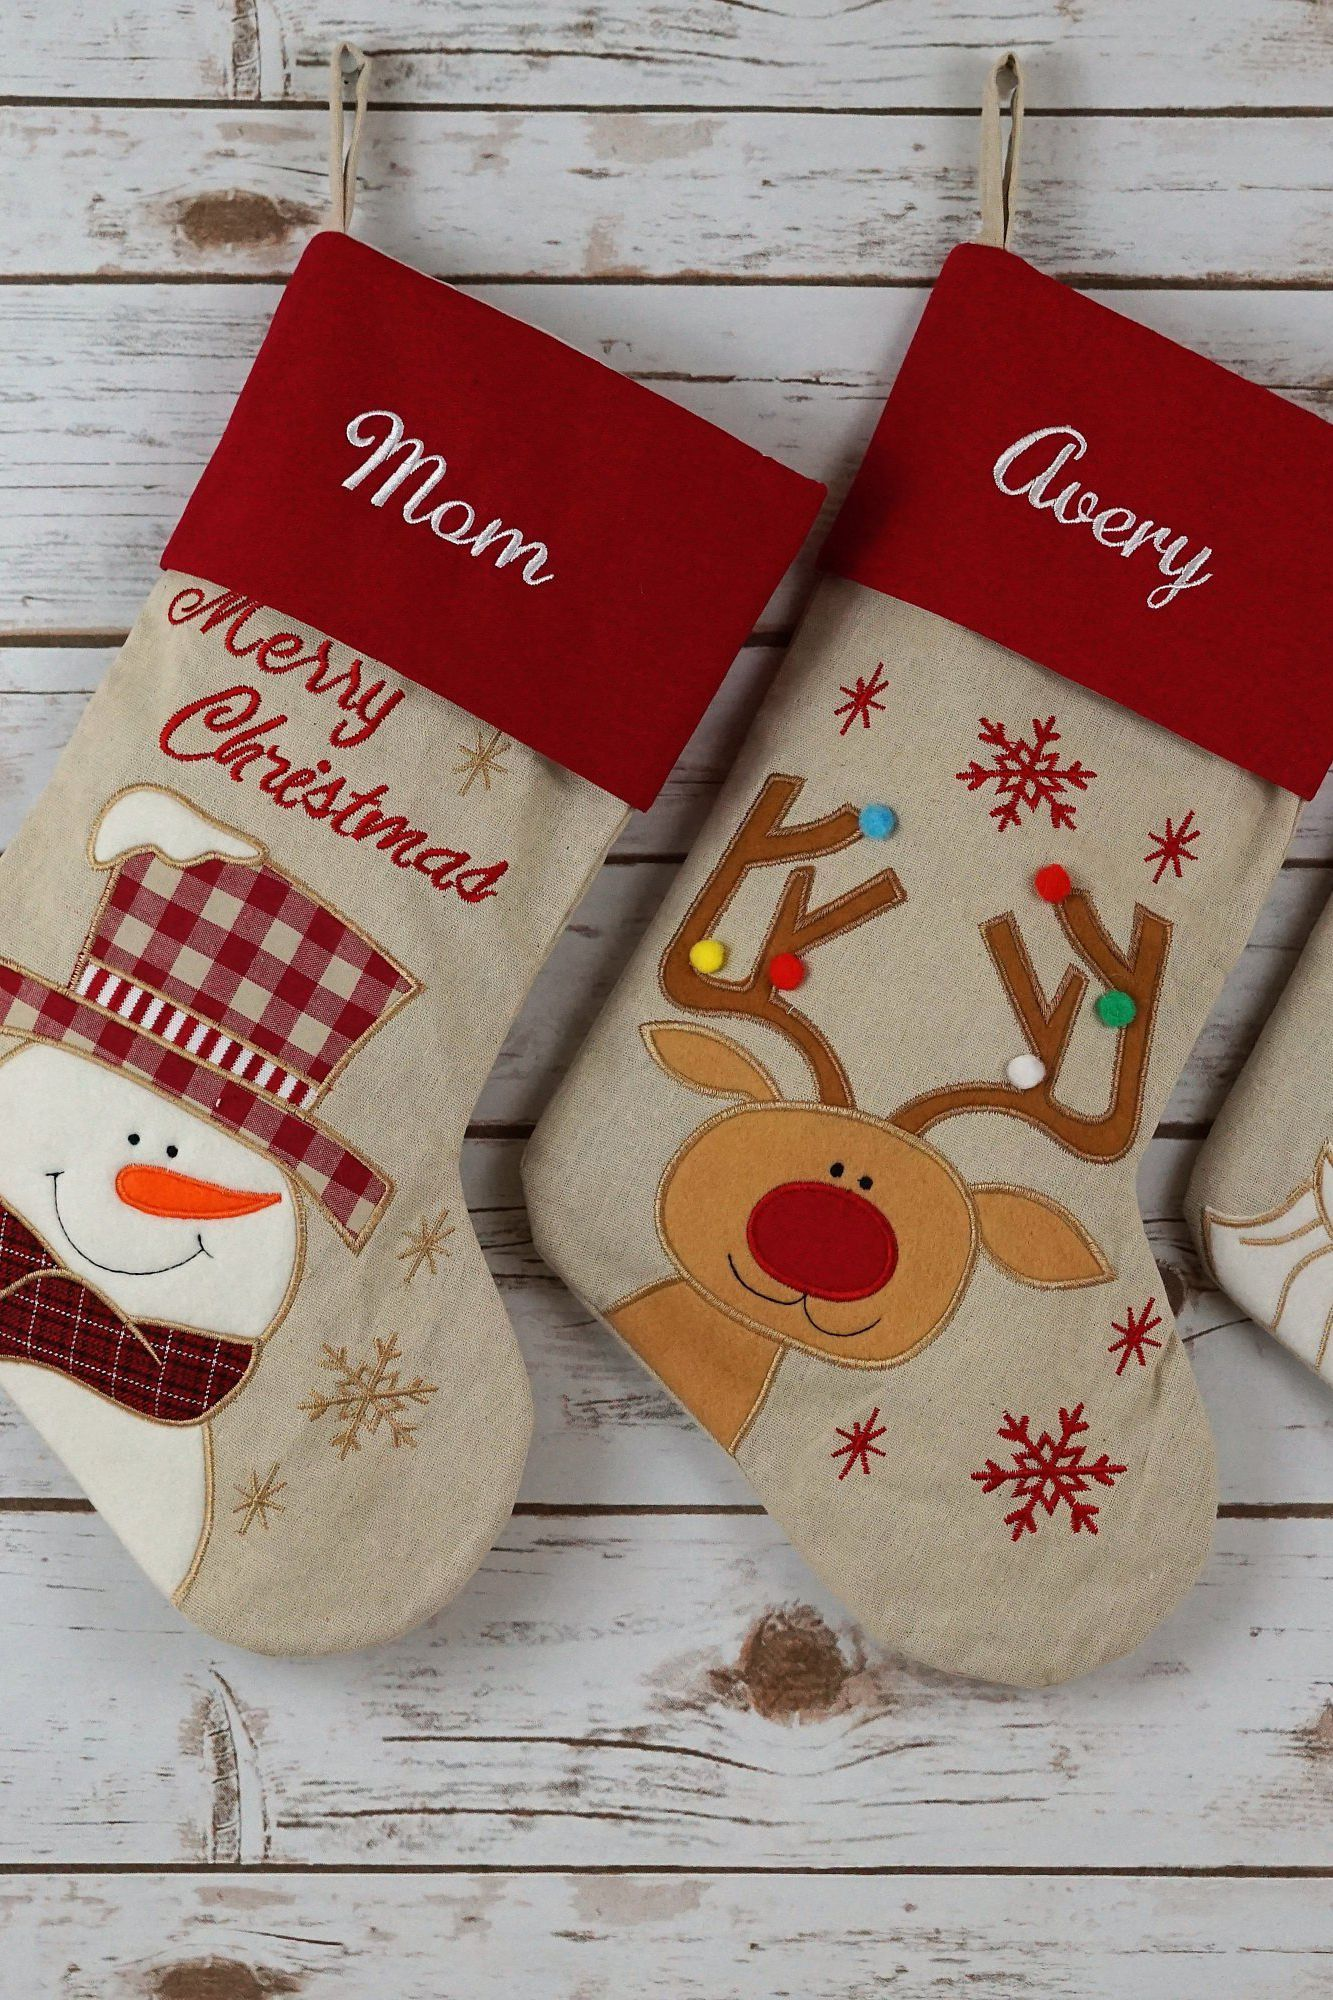 20 personalized christmas stockings embroidered and monogrammed stockings to buy - Embroidered Christmas Stocking